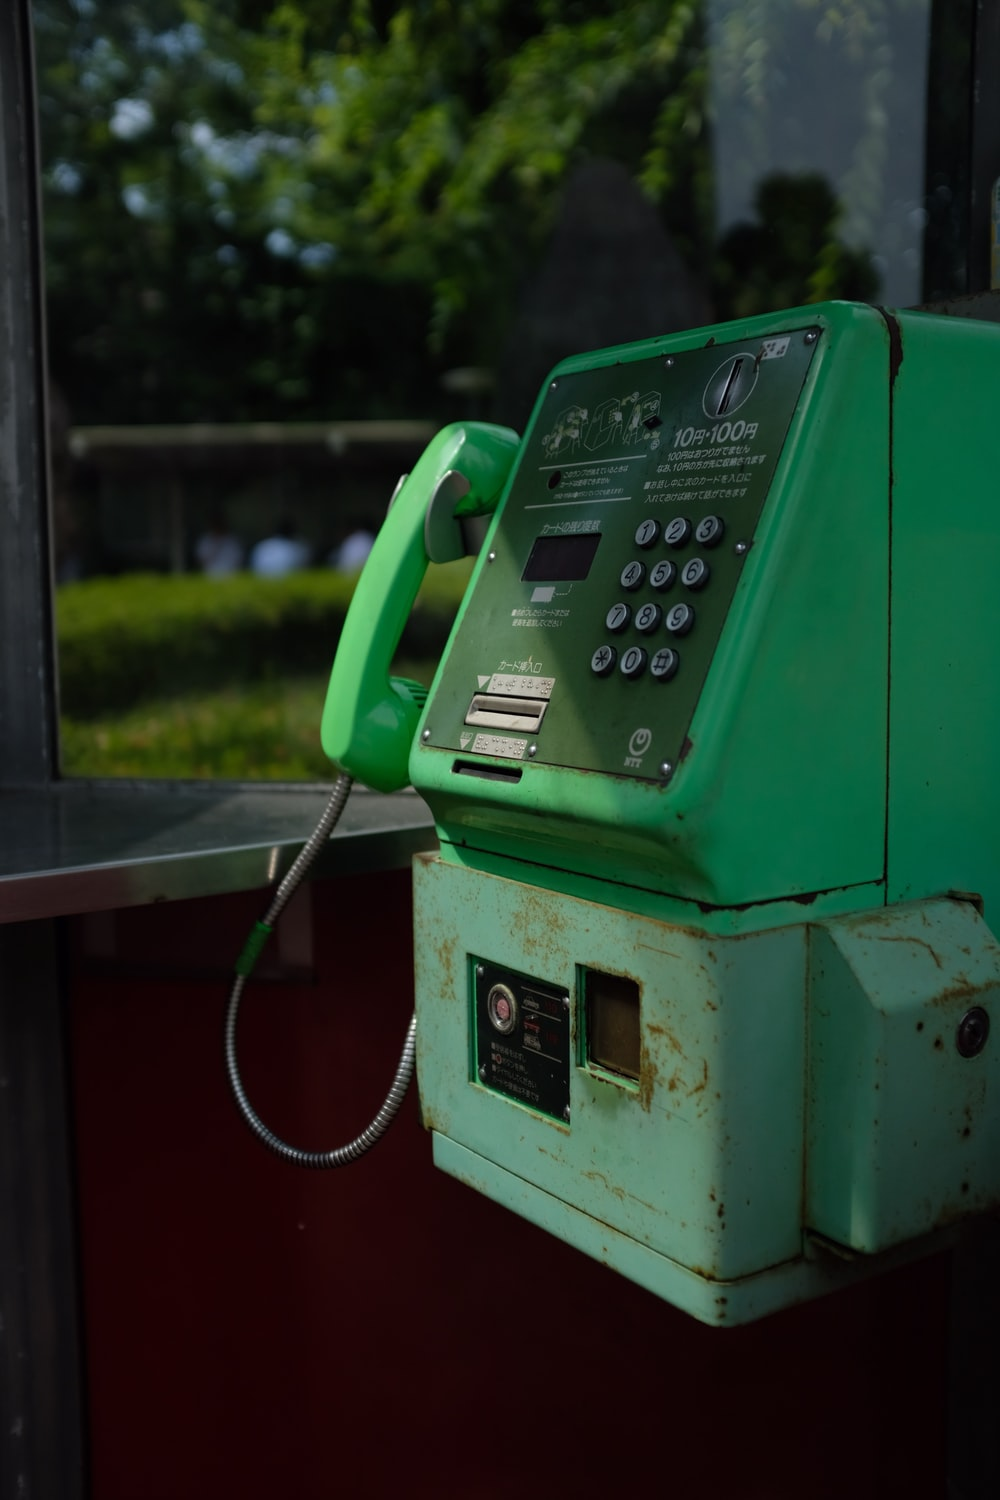 green coin operated telephone